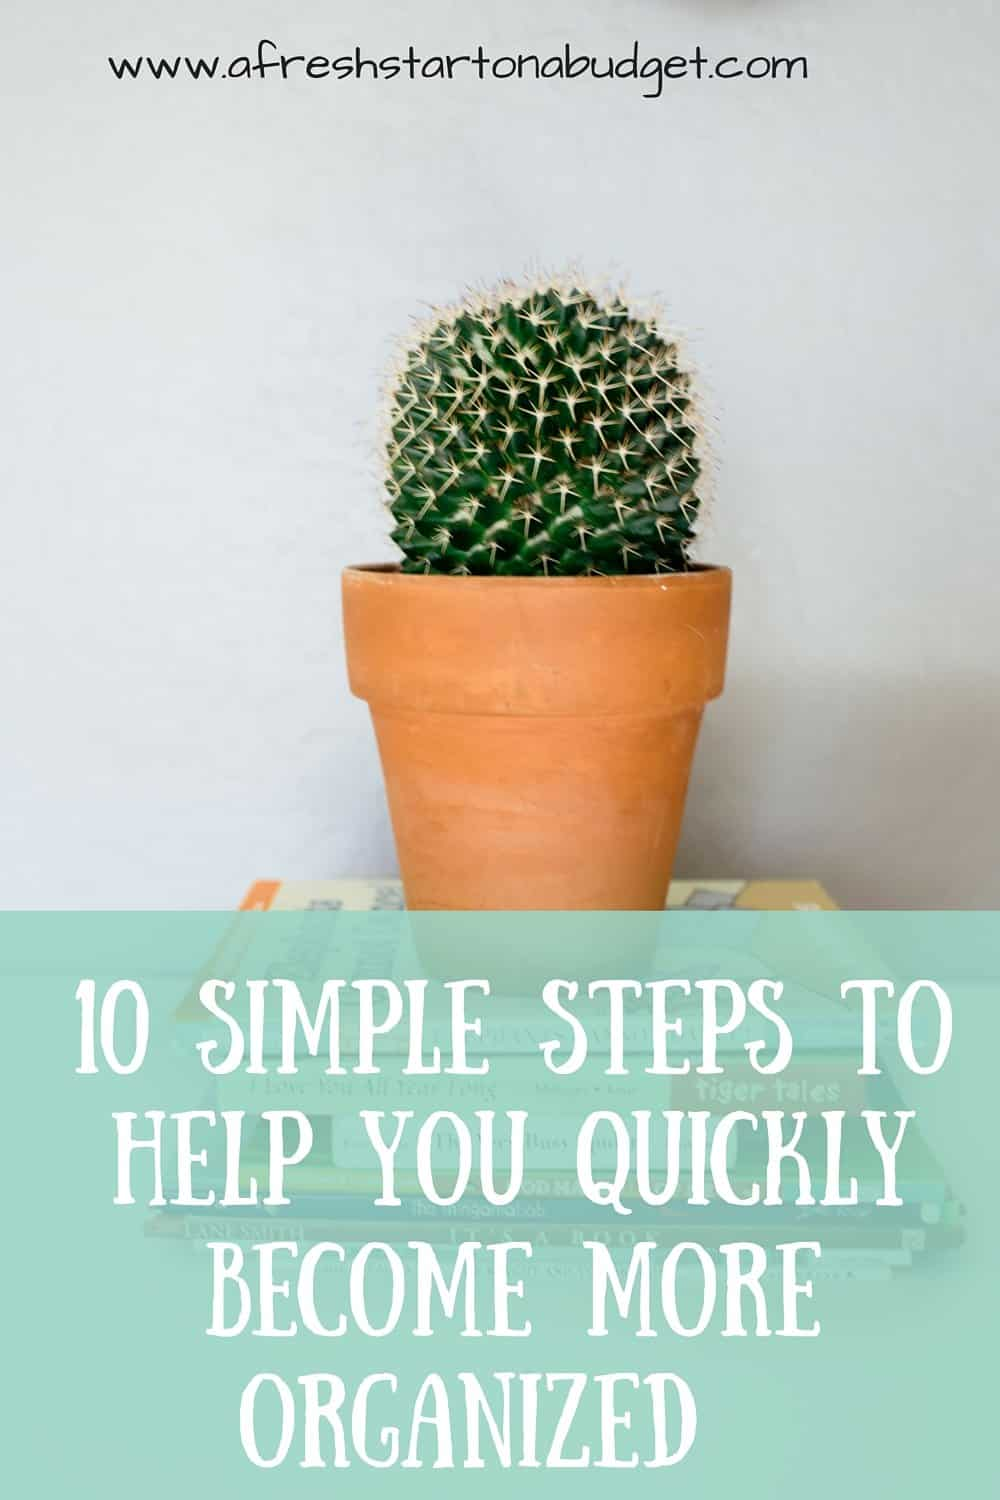 10 simple steps to help you quickly become more organized.